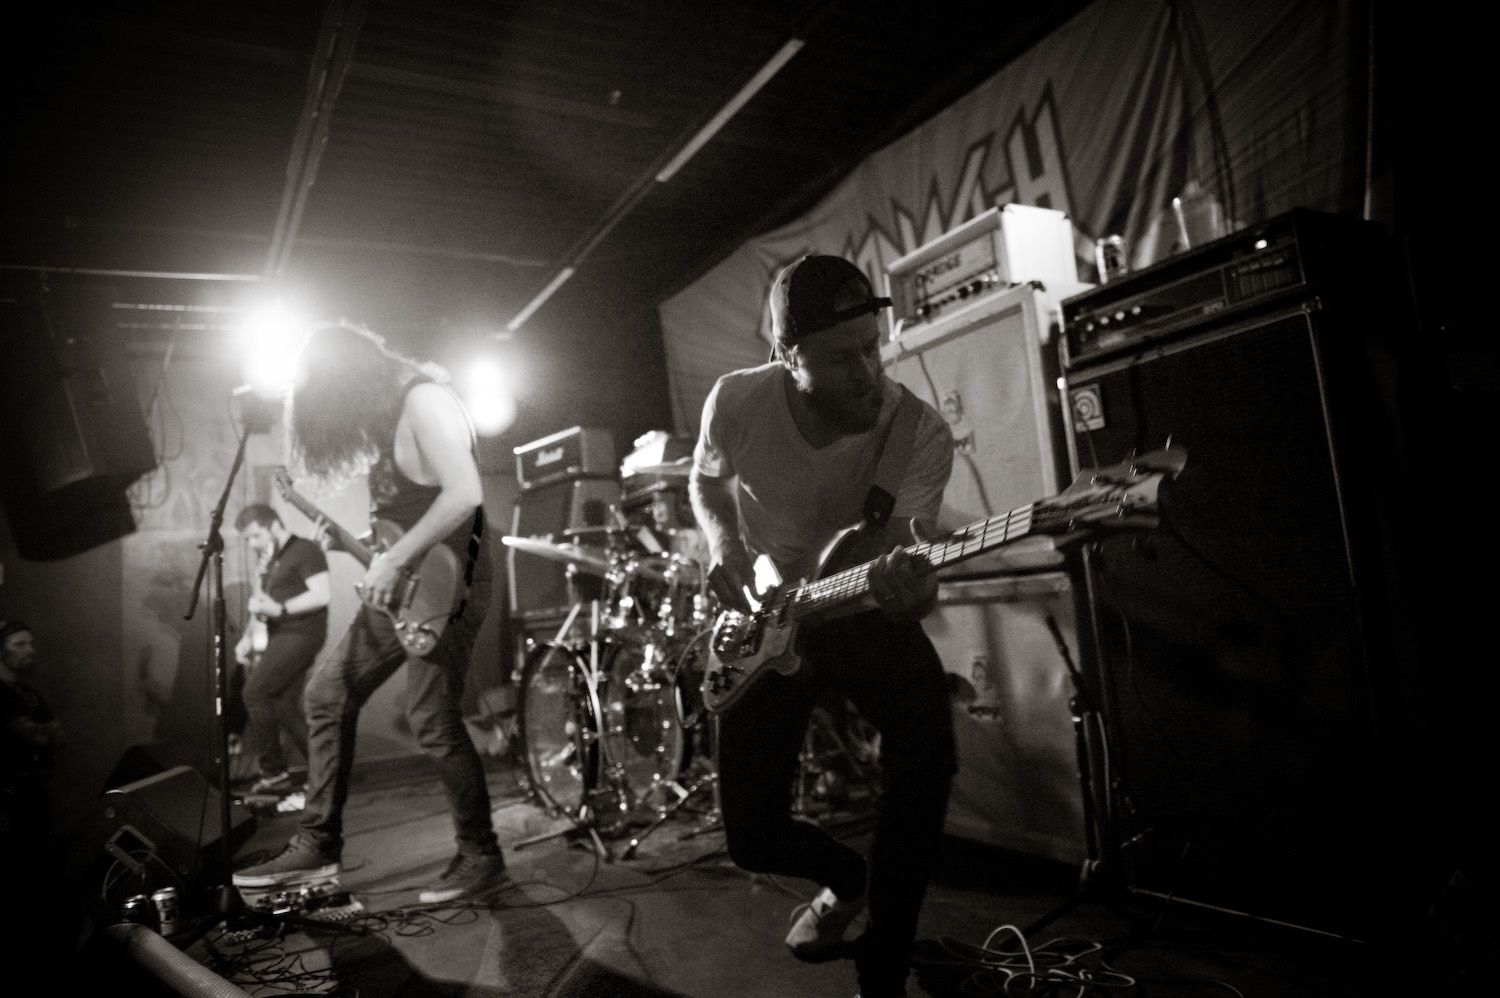 Horseburner  (from Parkersburg, WV) is performing at Charleston's The Blue Parrot, this coming Saturday, with  Dread Utopia  and  Signals . If you missed  Michelle 's interview with Horseburner earlier in the month, you can check it out,  here . Photo by Michelle Waters